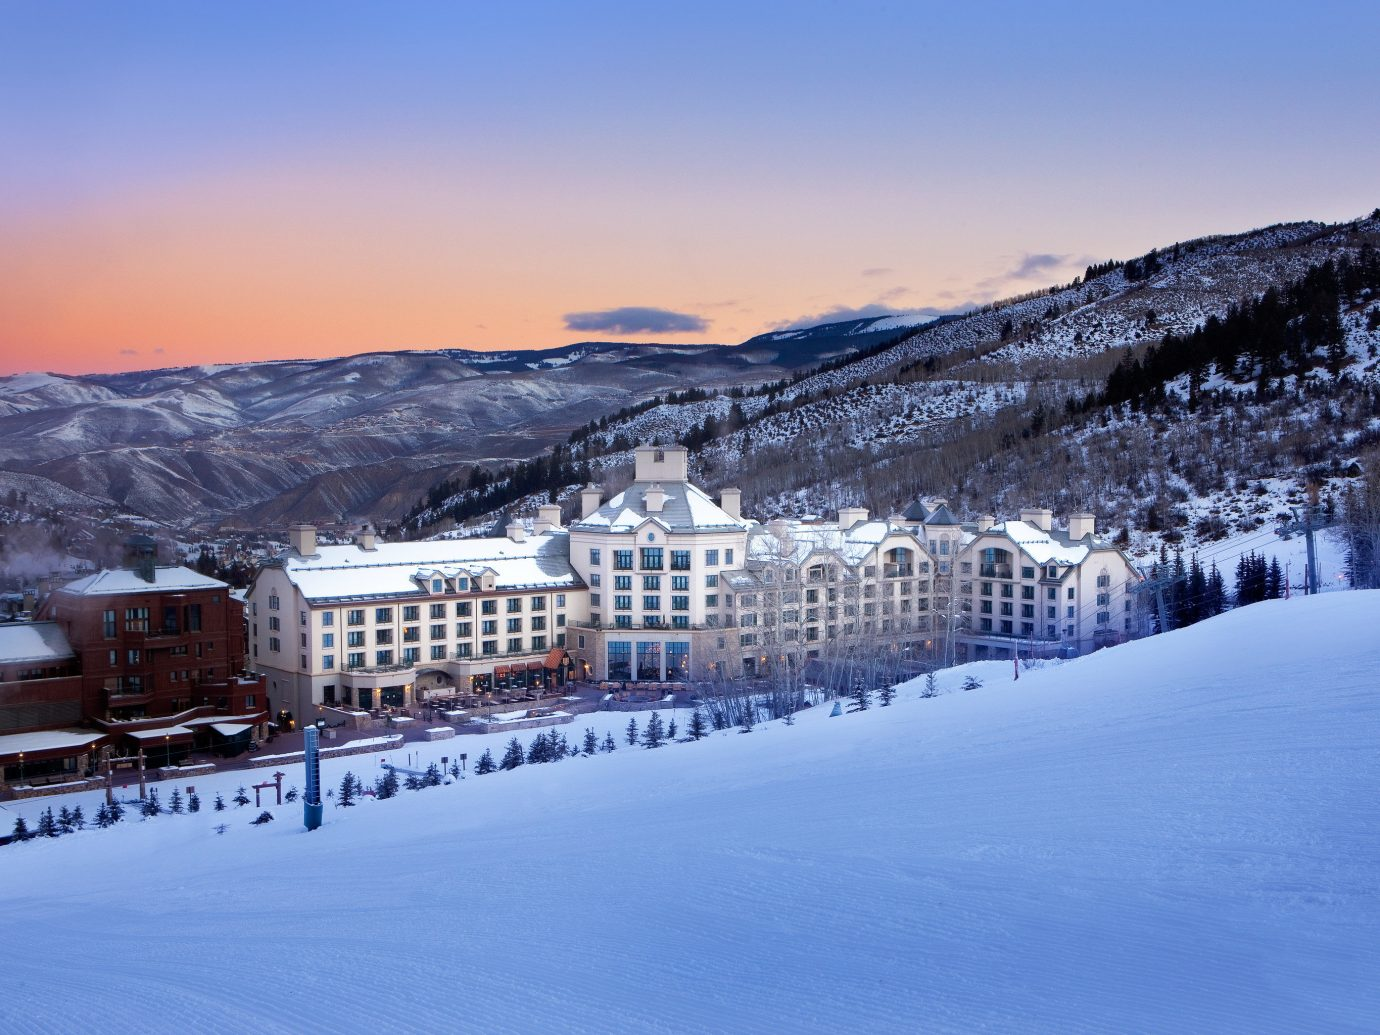 Hotels Luxury Travel Mountains + Skiing snow sky outdoor Winter mountainous landforms weather mountain season Nature mountain range freezing morning landscape evening sunlight piste ice dusk slope